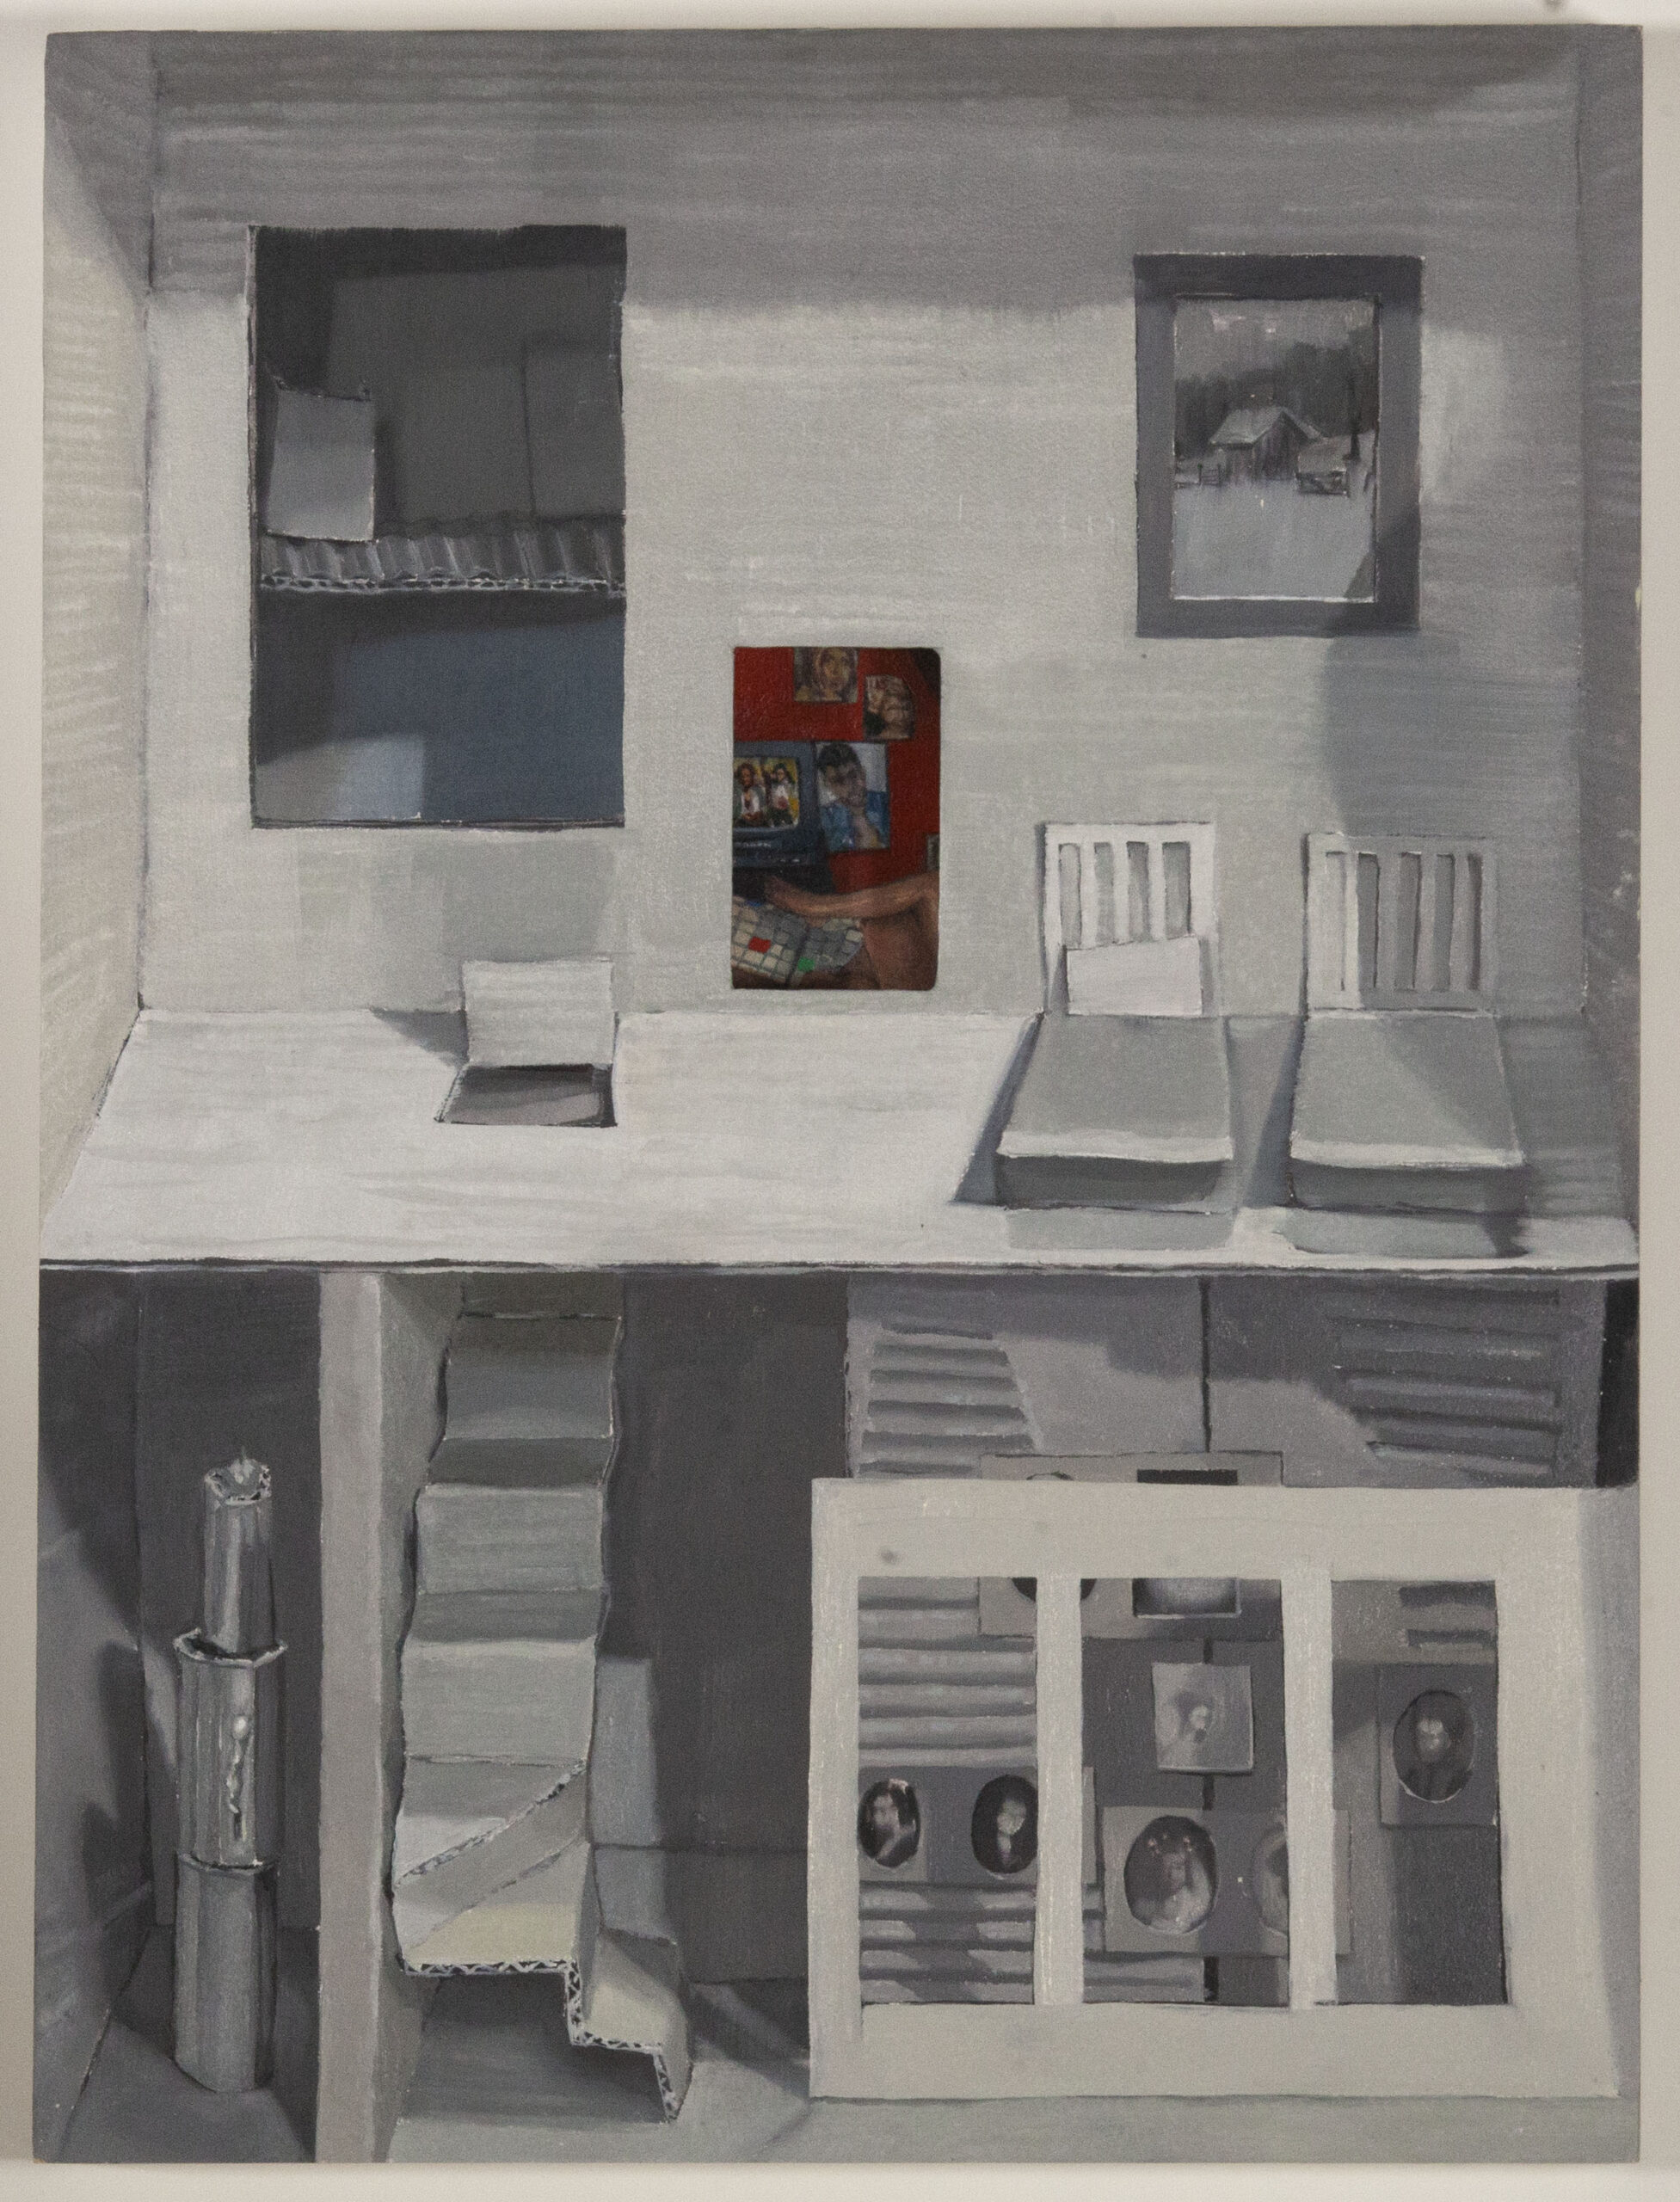 Coleen. Anne Carney Raines. Jackson's Painting Prize.